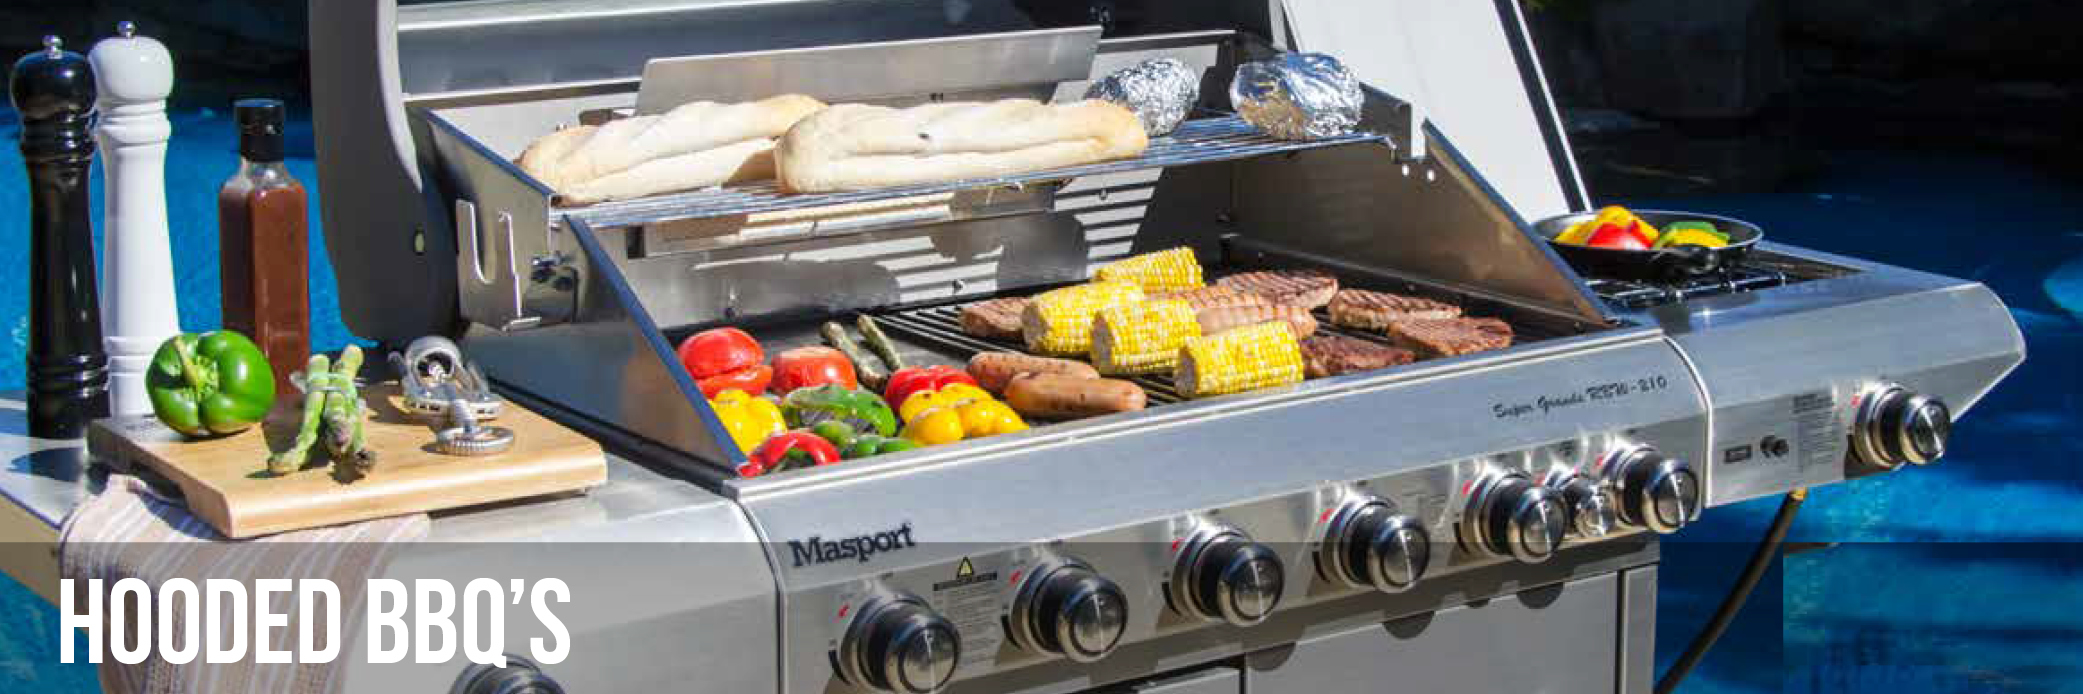 category_top_bbq_hooded